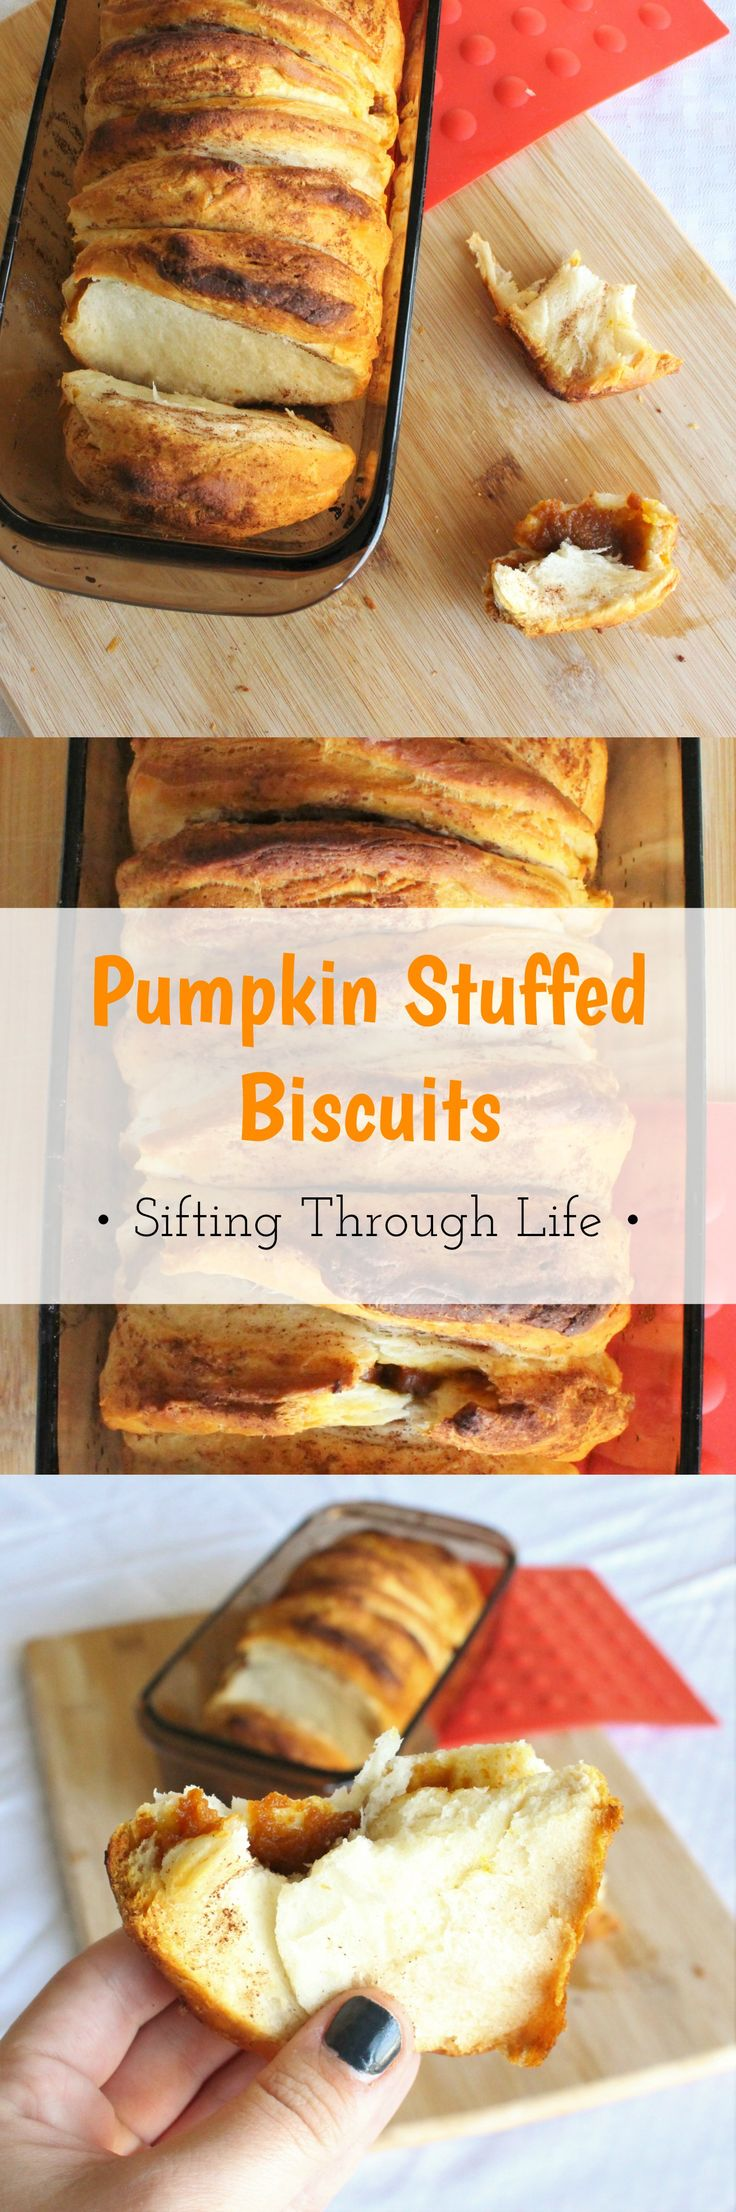 ... stuffed biscuits honey ham stuffed biscuits see more pin 80 heart 10